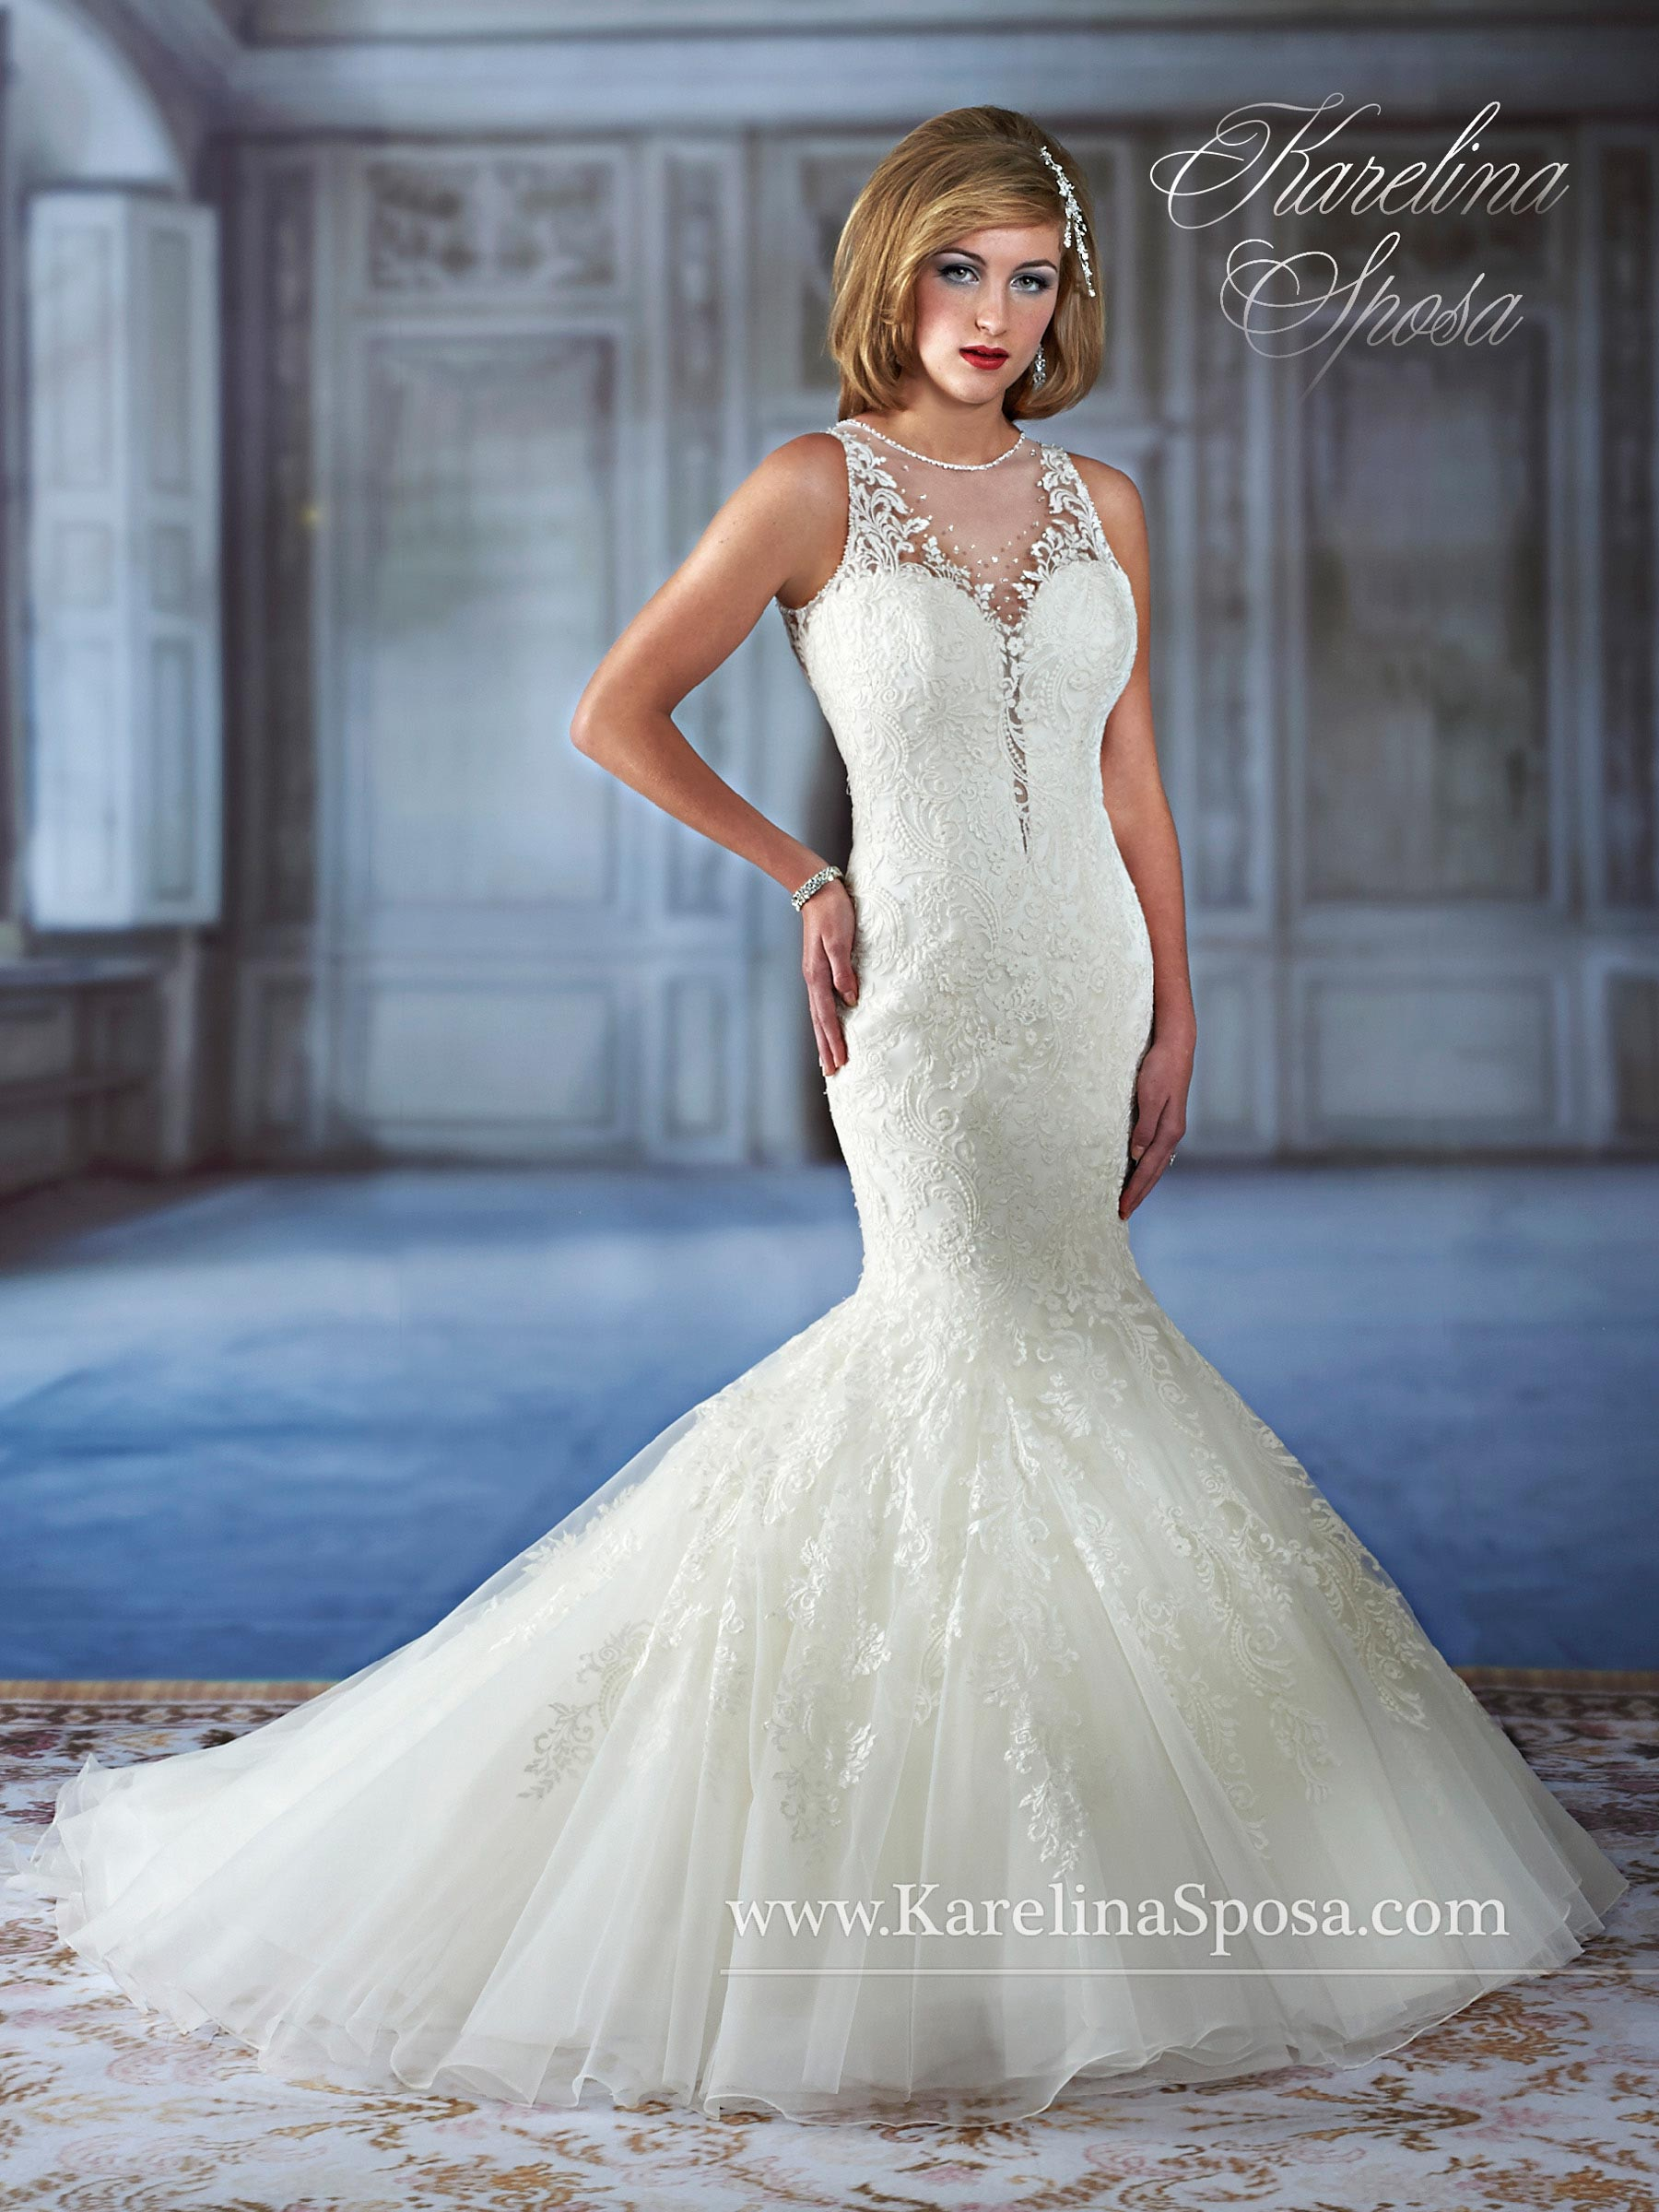 Couture Damour Bridal Dresses | Style - C7972 in White or Ivory Color